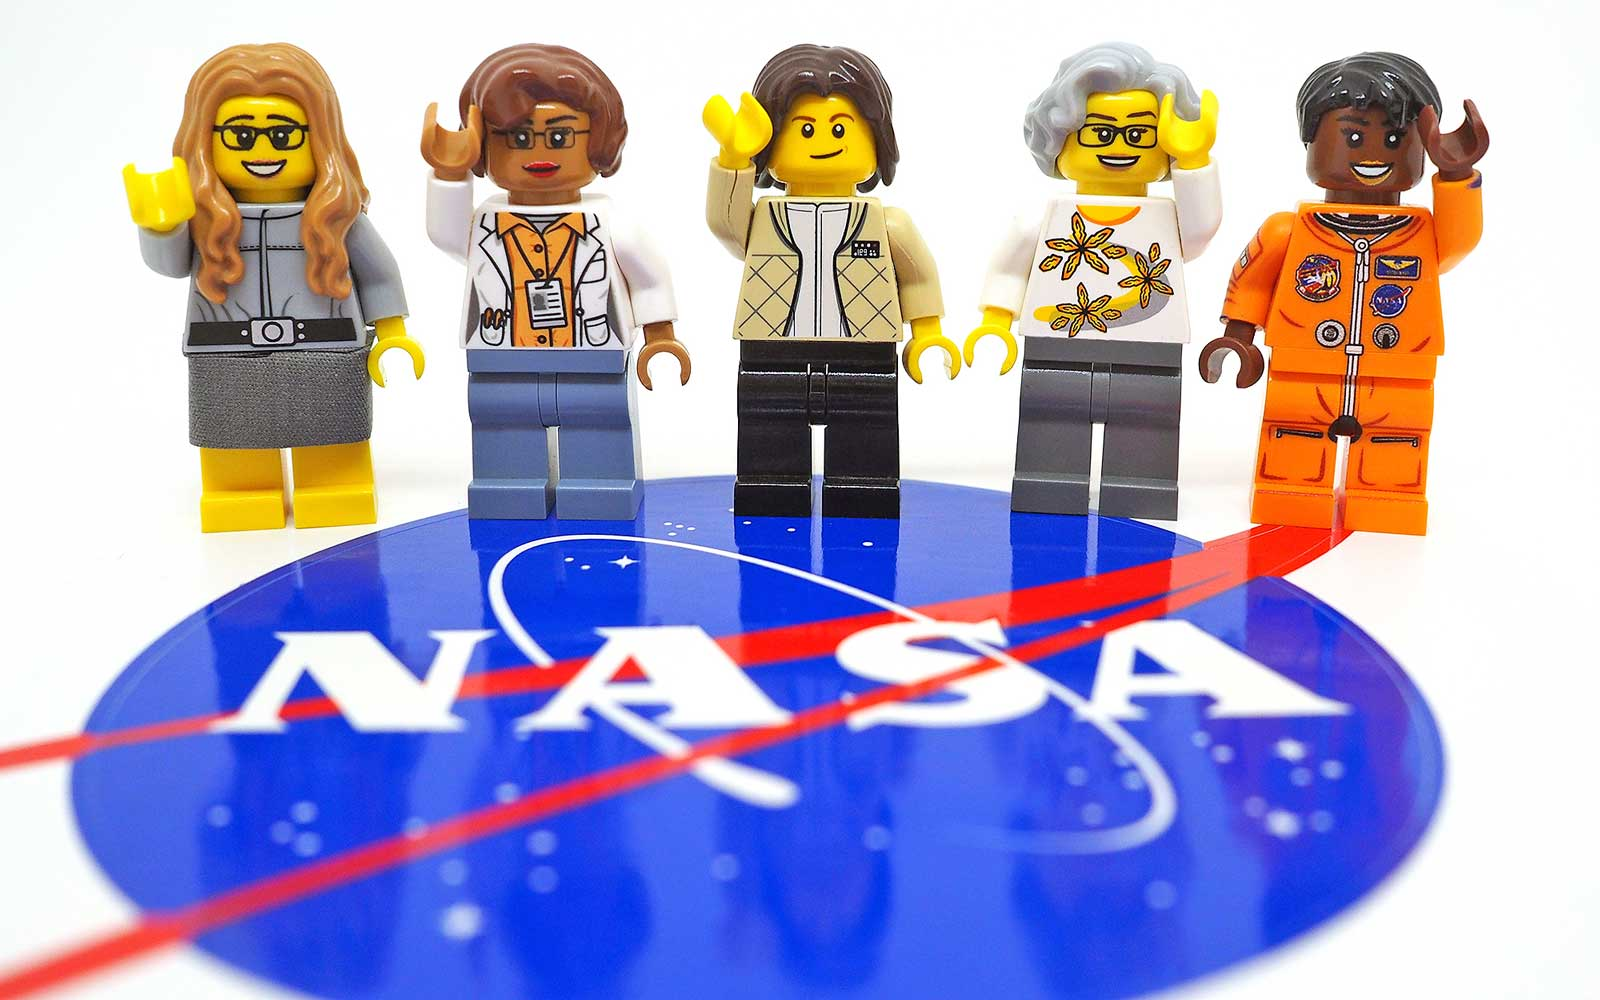 Lego Is Going to Sell a Women in NASA Set